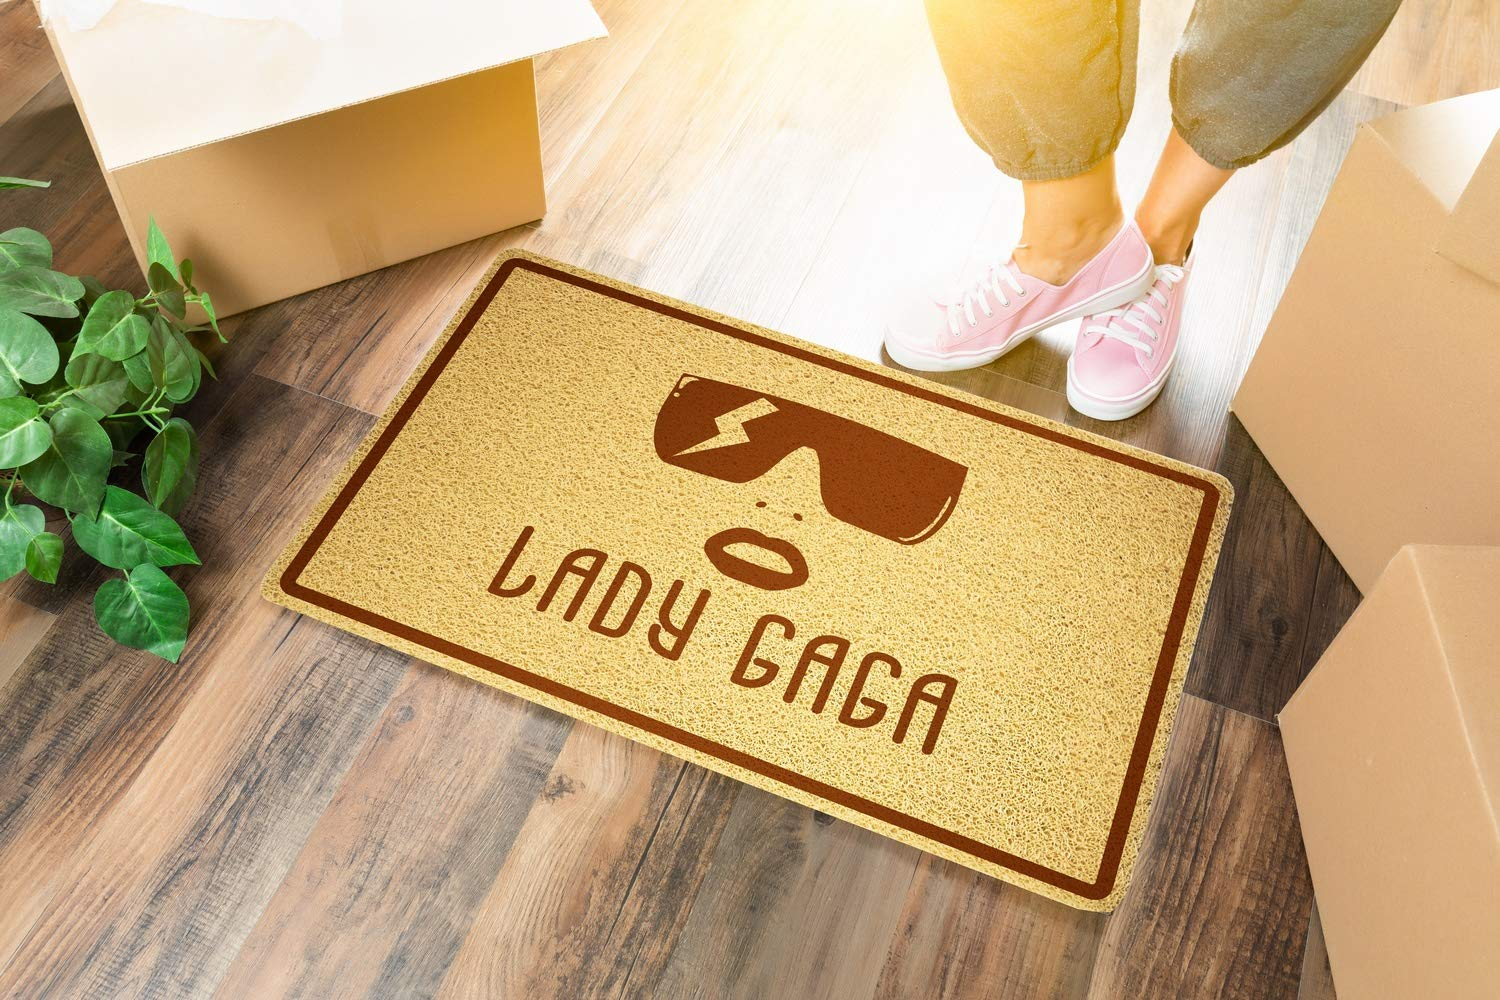 LADY GAGA Doormat Sweet Home Supplies D/écor Accessories Unique Gift Handmade Present Idea Original Design Commercial Outside Inside Personalized Quotes Exterior